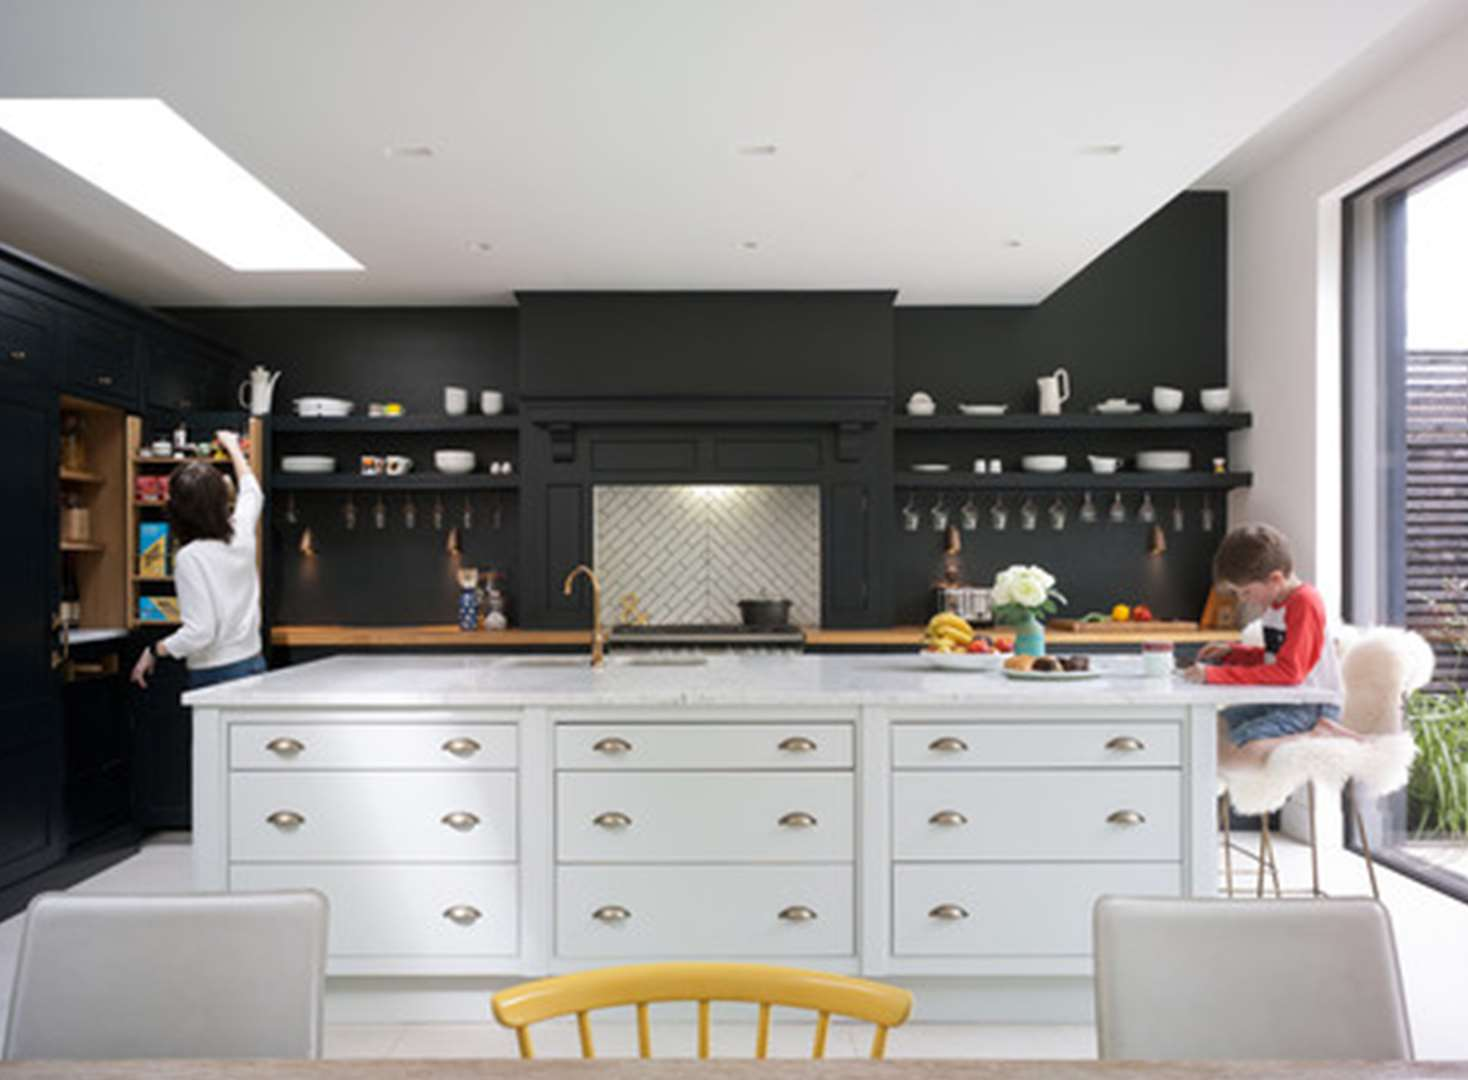 Latest kitchen trend: Can you live without kitchen wall units?